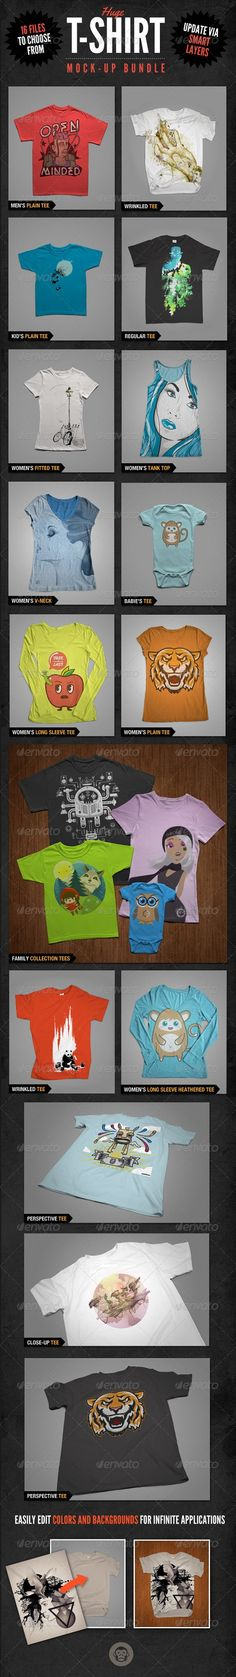 T-Shirt Mockups Bundle Pack » Free Special GFX Posts Vectors AEP Projects PSD Web Templates